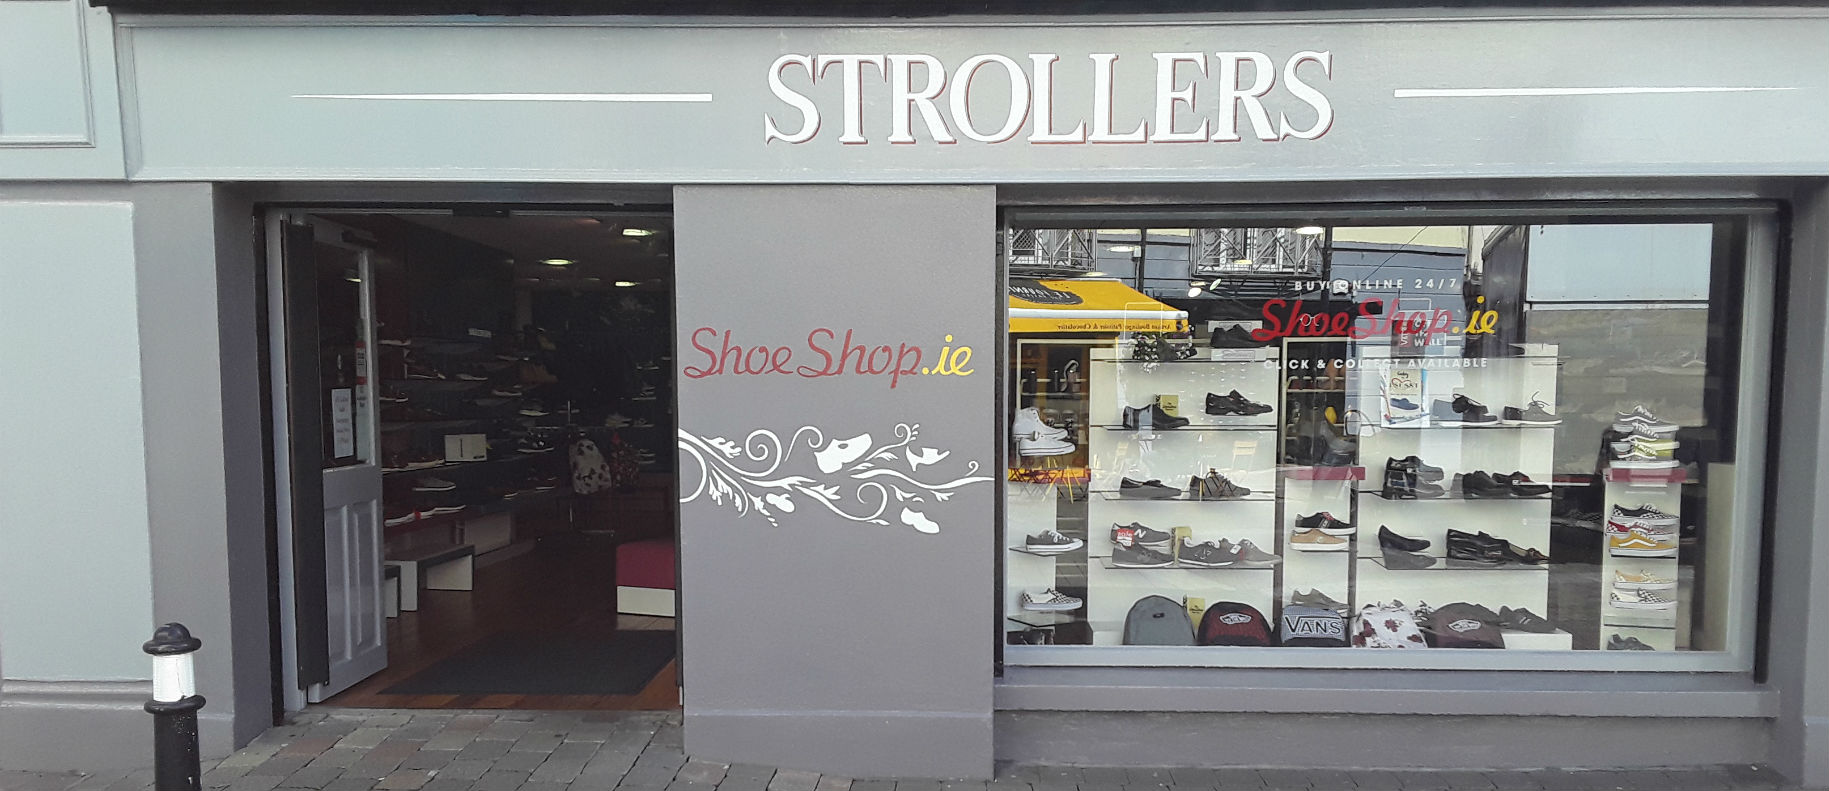 Strollers Shoes Sligo shopfront